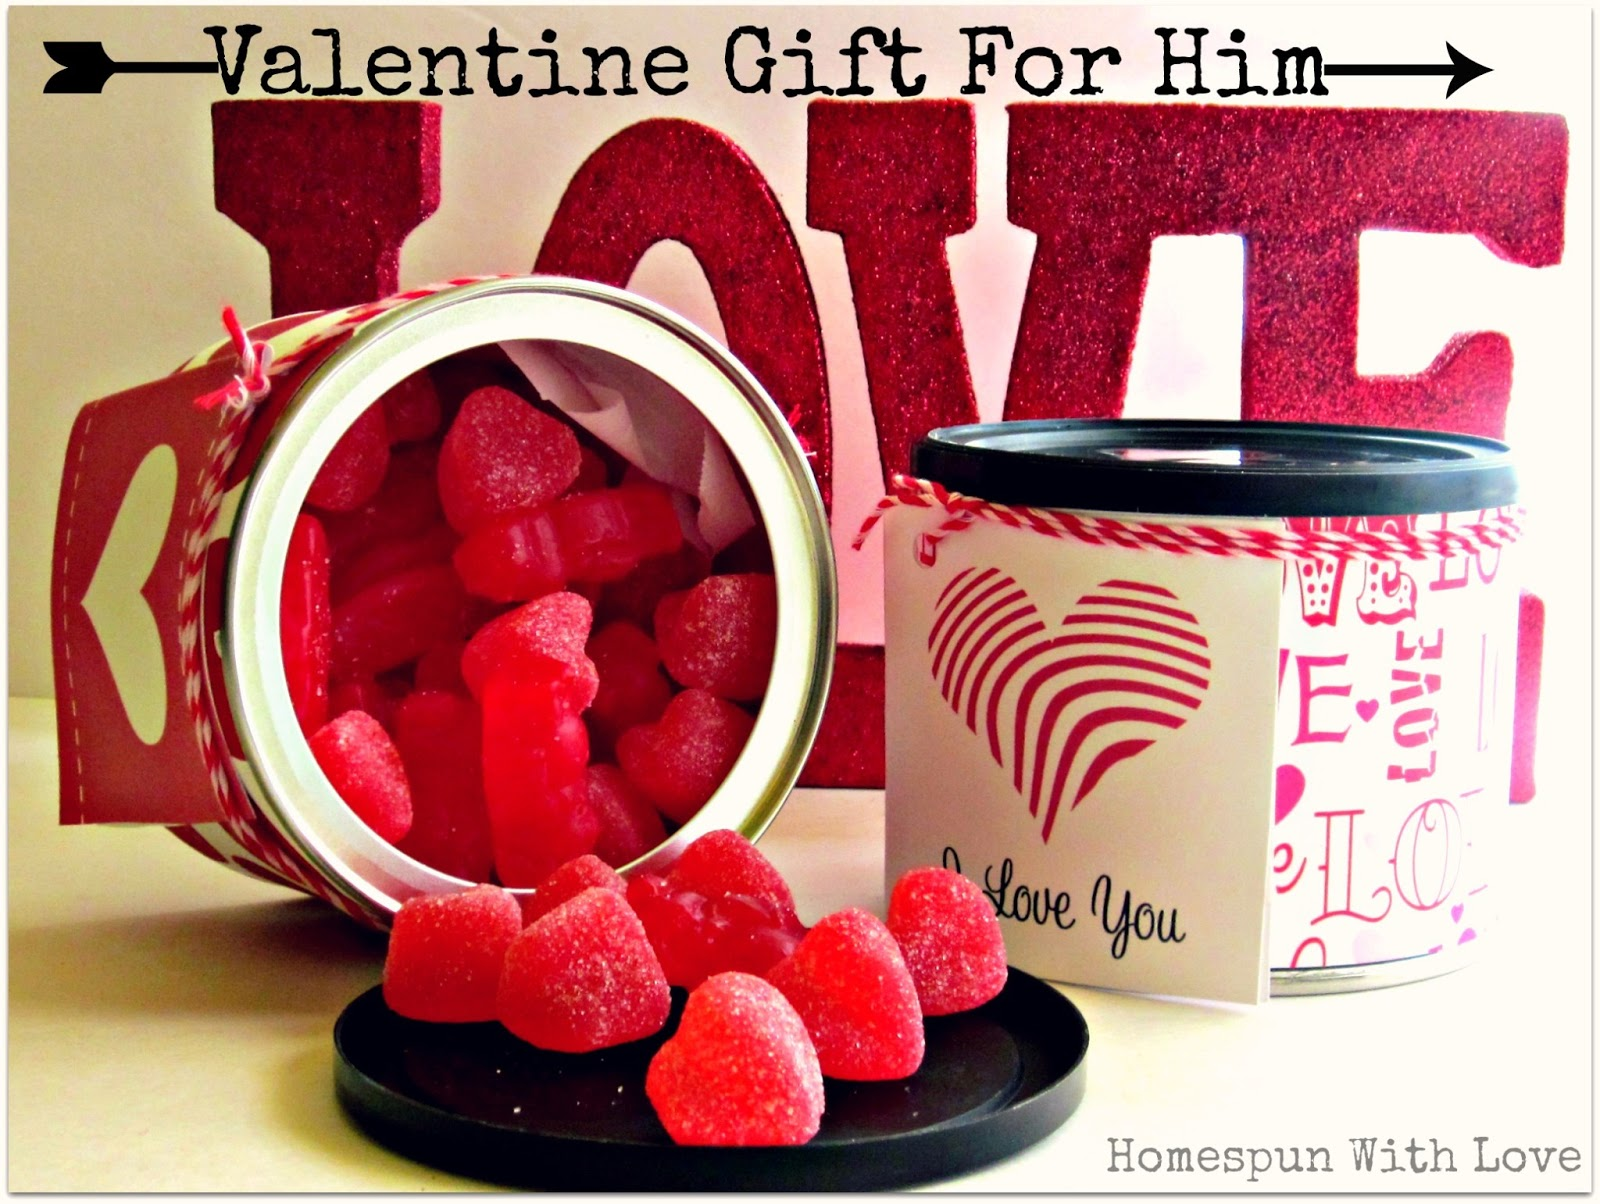 Valentine Gift For Him